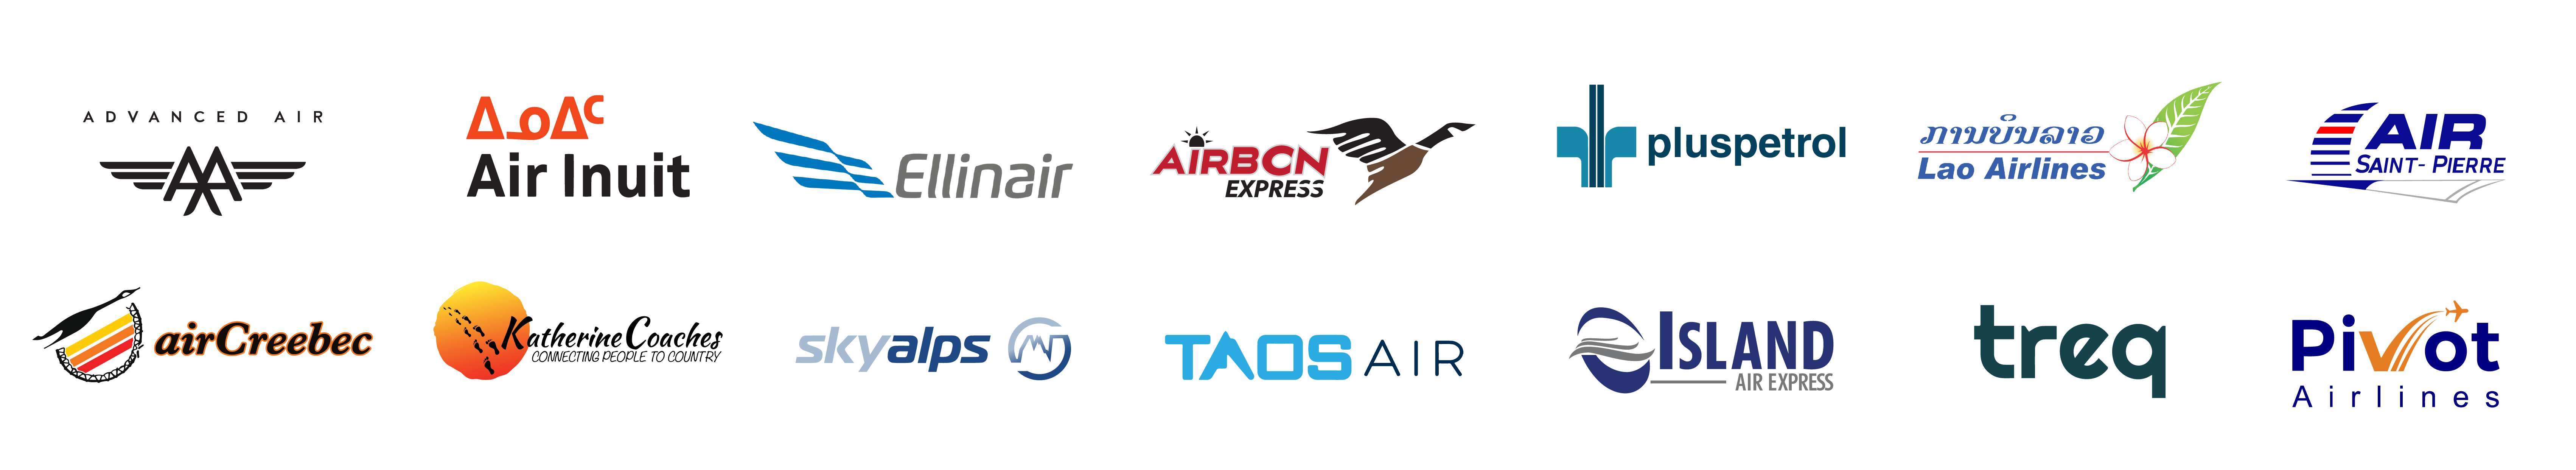 2020-AIRLINES SIGNED